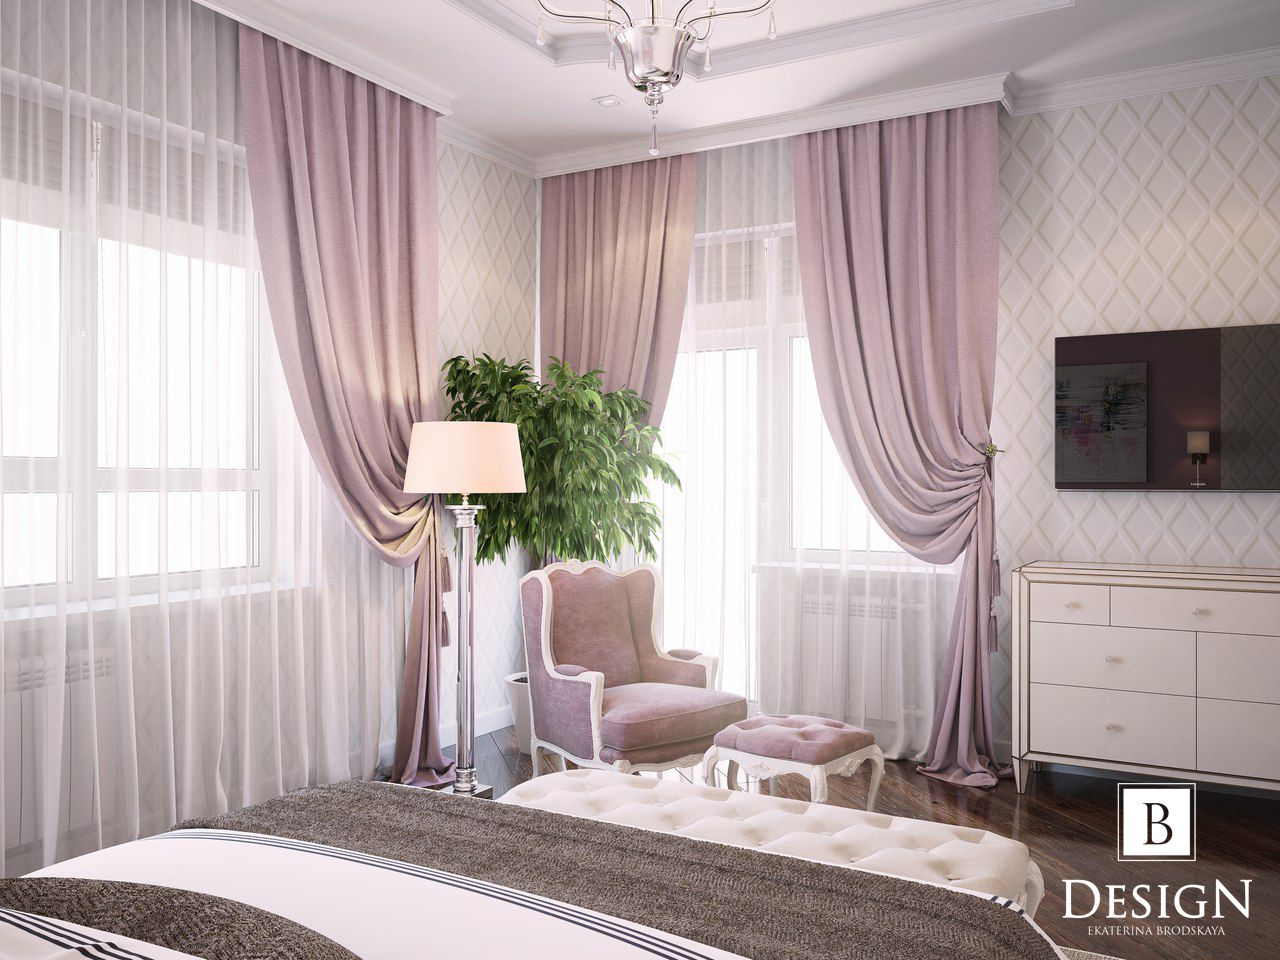 blinds | Decor ideas | Pinterest | Schlafzimmer, Schlafzimmer ideen ...